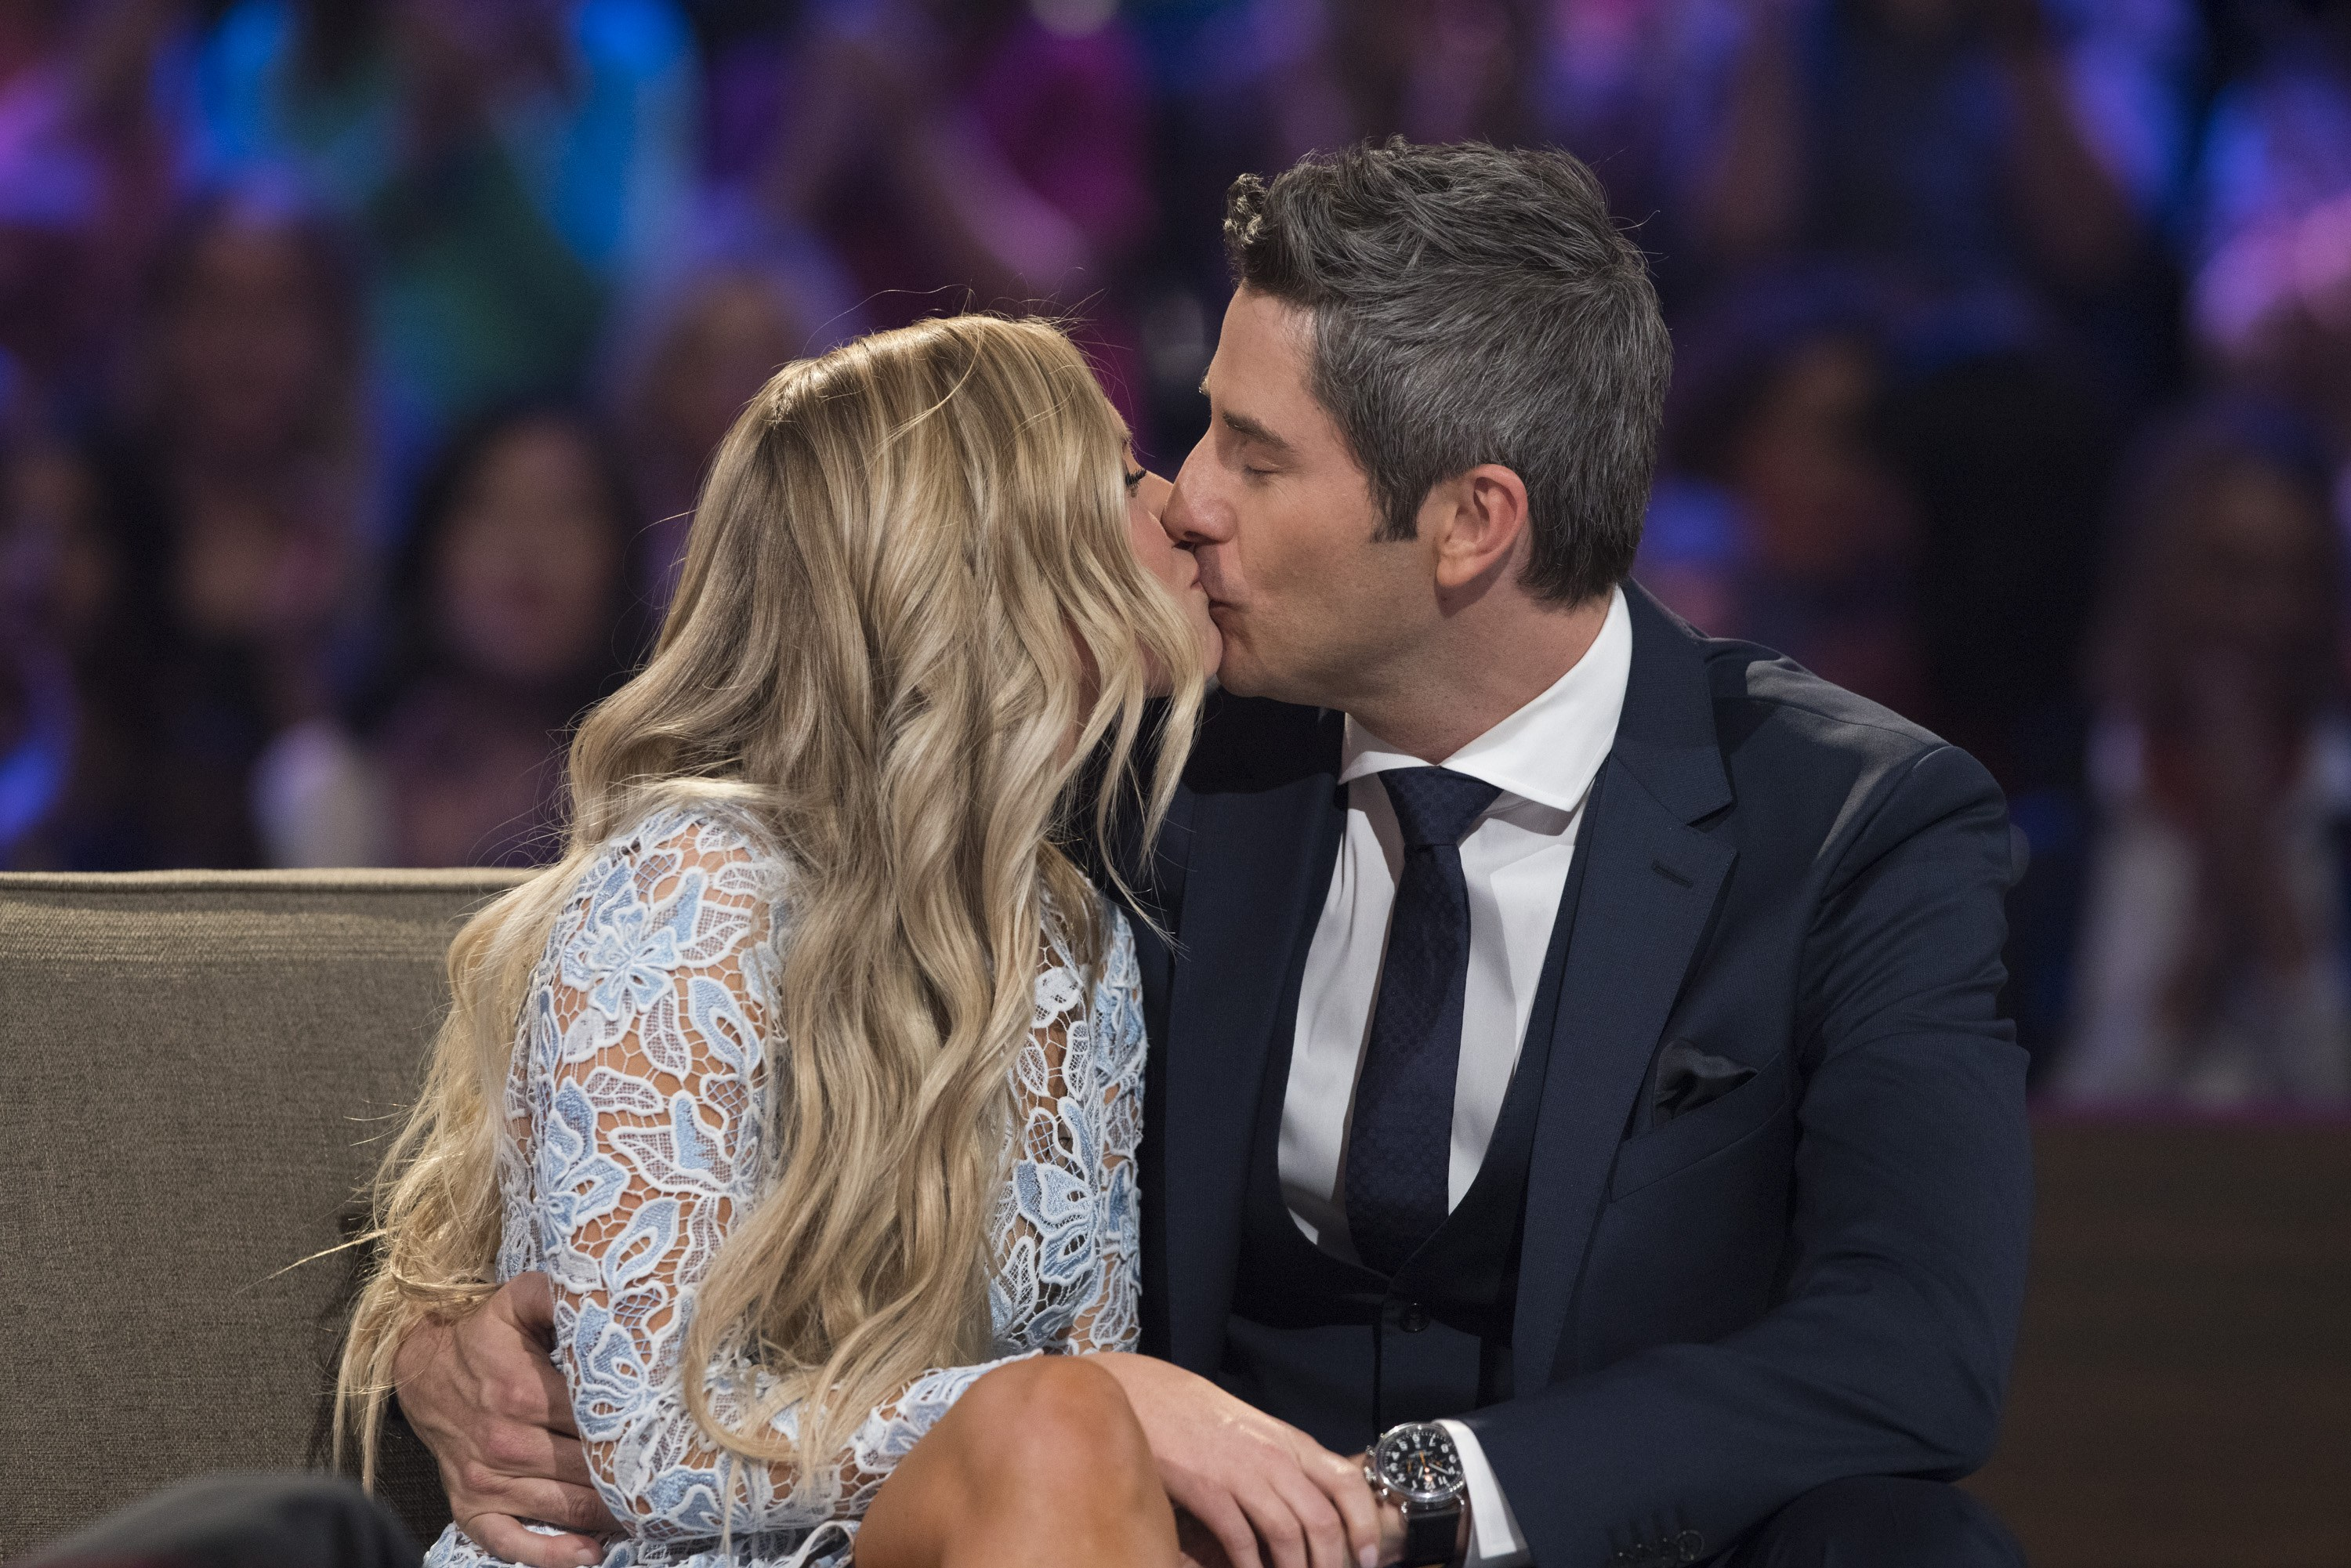 Arie and Lauren kiss on TV